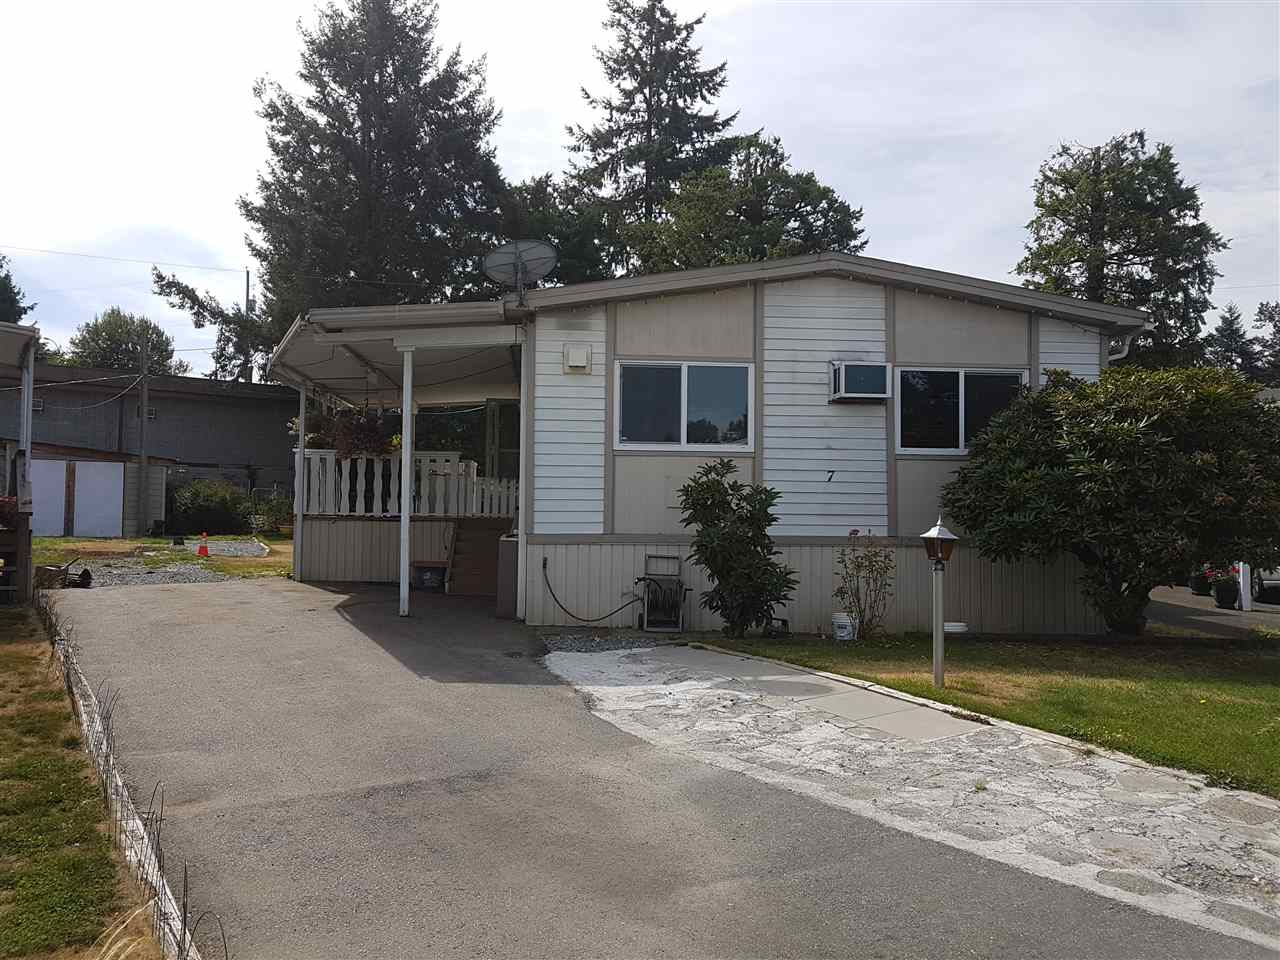 """PARADISE PARK! Well run and maintained adult oriented neighbourhood in West Abbotsford. 55+ age restriction and one small pet is welcome. 3 good sized bedrooms, 2 bathrooms. Nice recent updates include vinyl windows, laminate floors, 2"""" wide vertical blinds, appliances and paint. Detached shop has power and oversized lot (more than 8000 sq ft) could fit a bigger shop (permits required) or ample parking and gardens. Not your typical """"pad"""". Great area is close to Gardner Park and High Street Mall. Quick and easy freeway access. 1 small pet OK"""